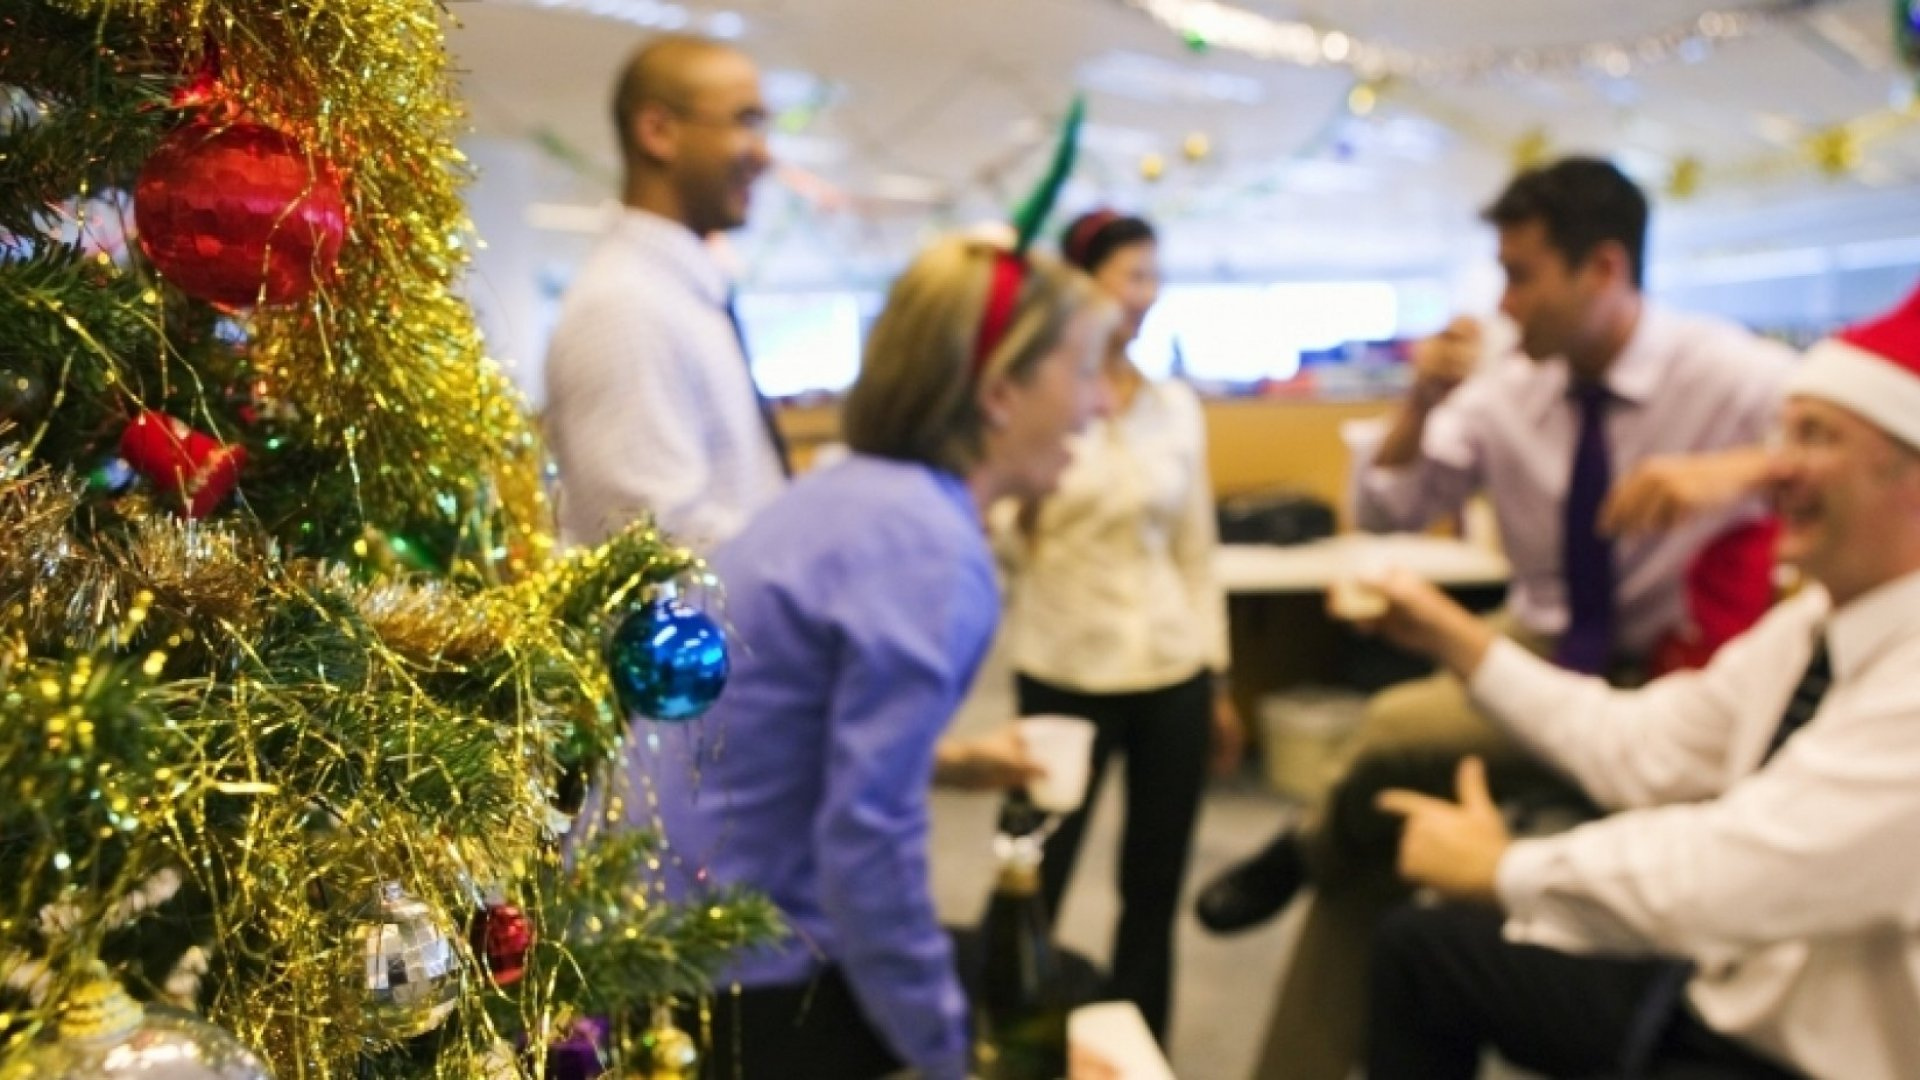 7 Terrible Habits to Avoid at the Holiday Office Party